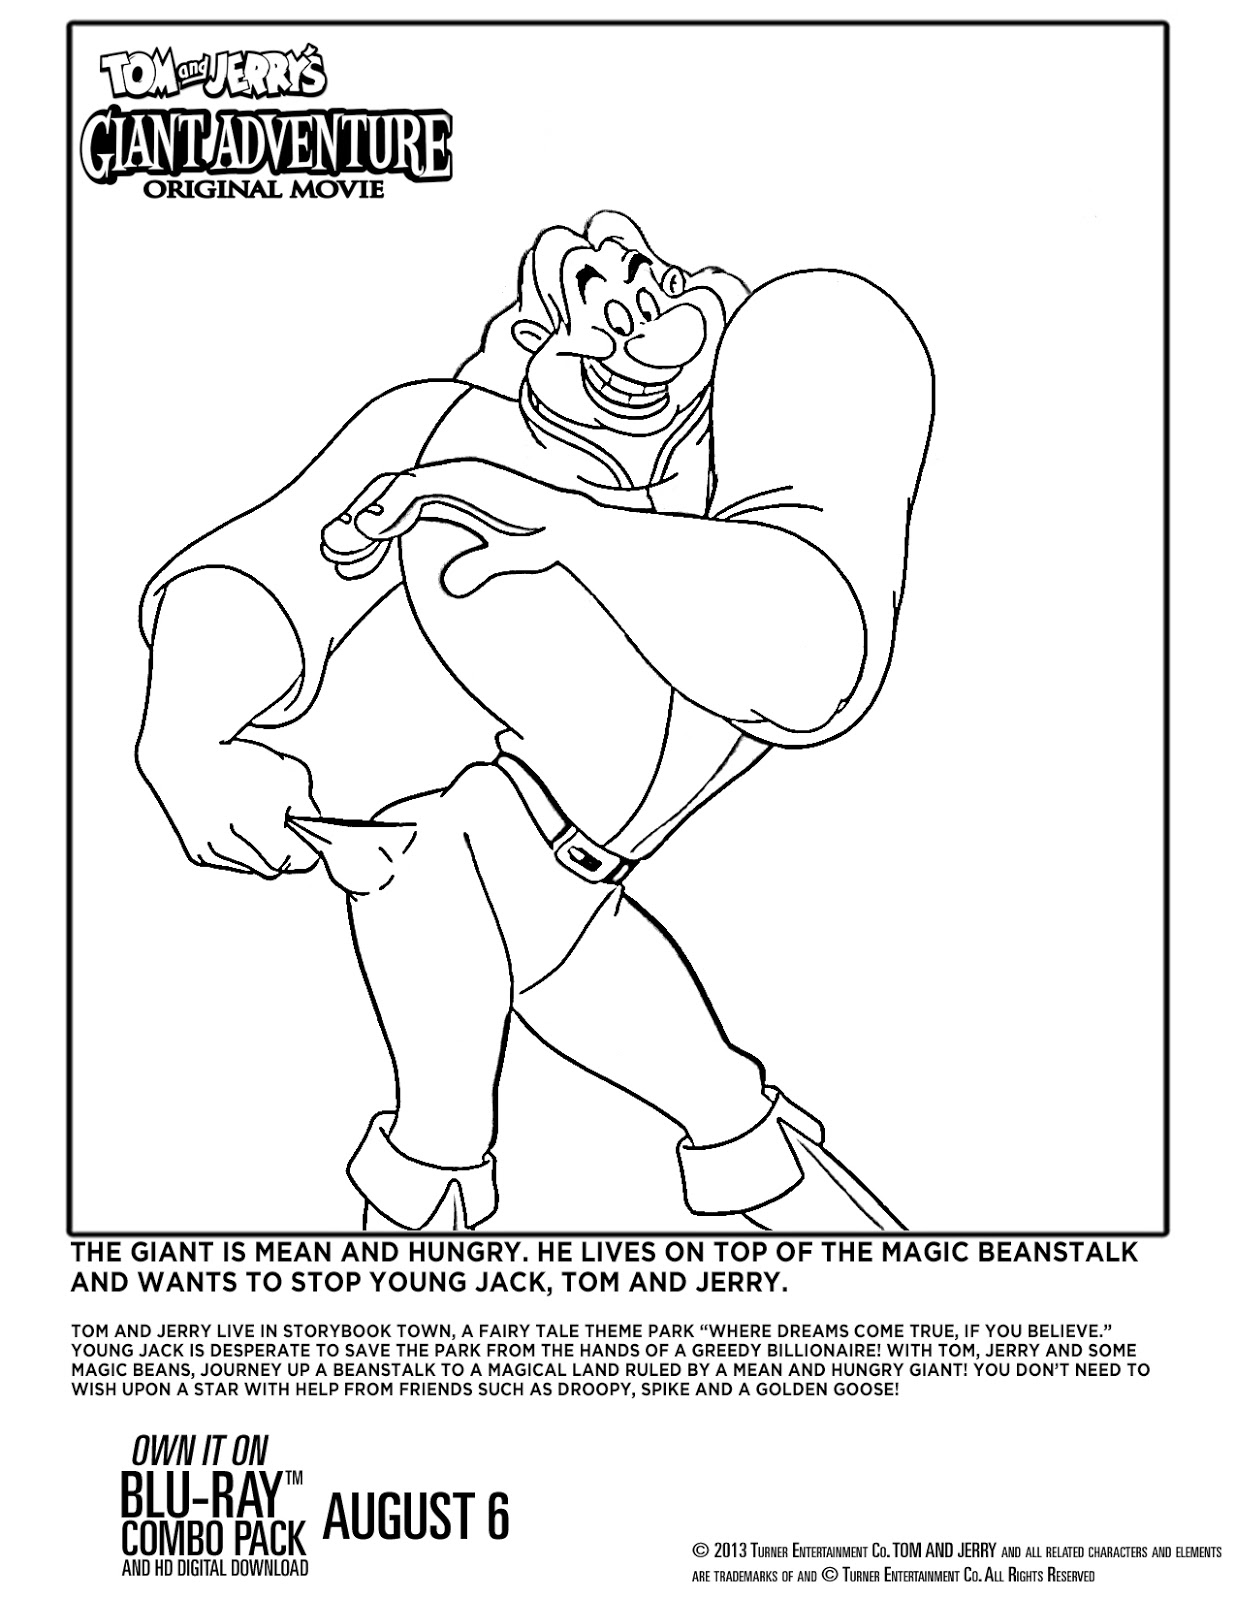 Tom And Jerry S Giant Adventure Coloring Sheet 4